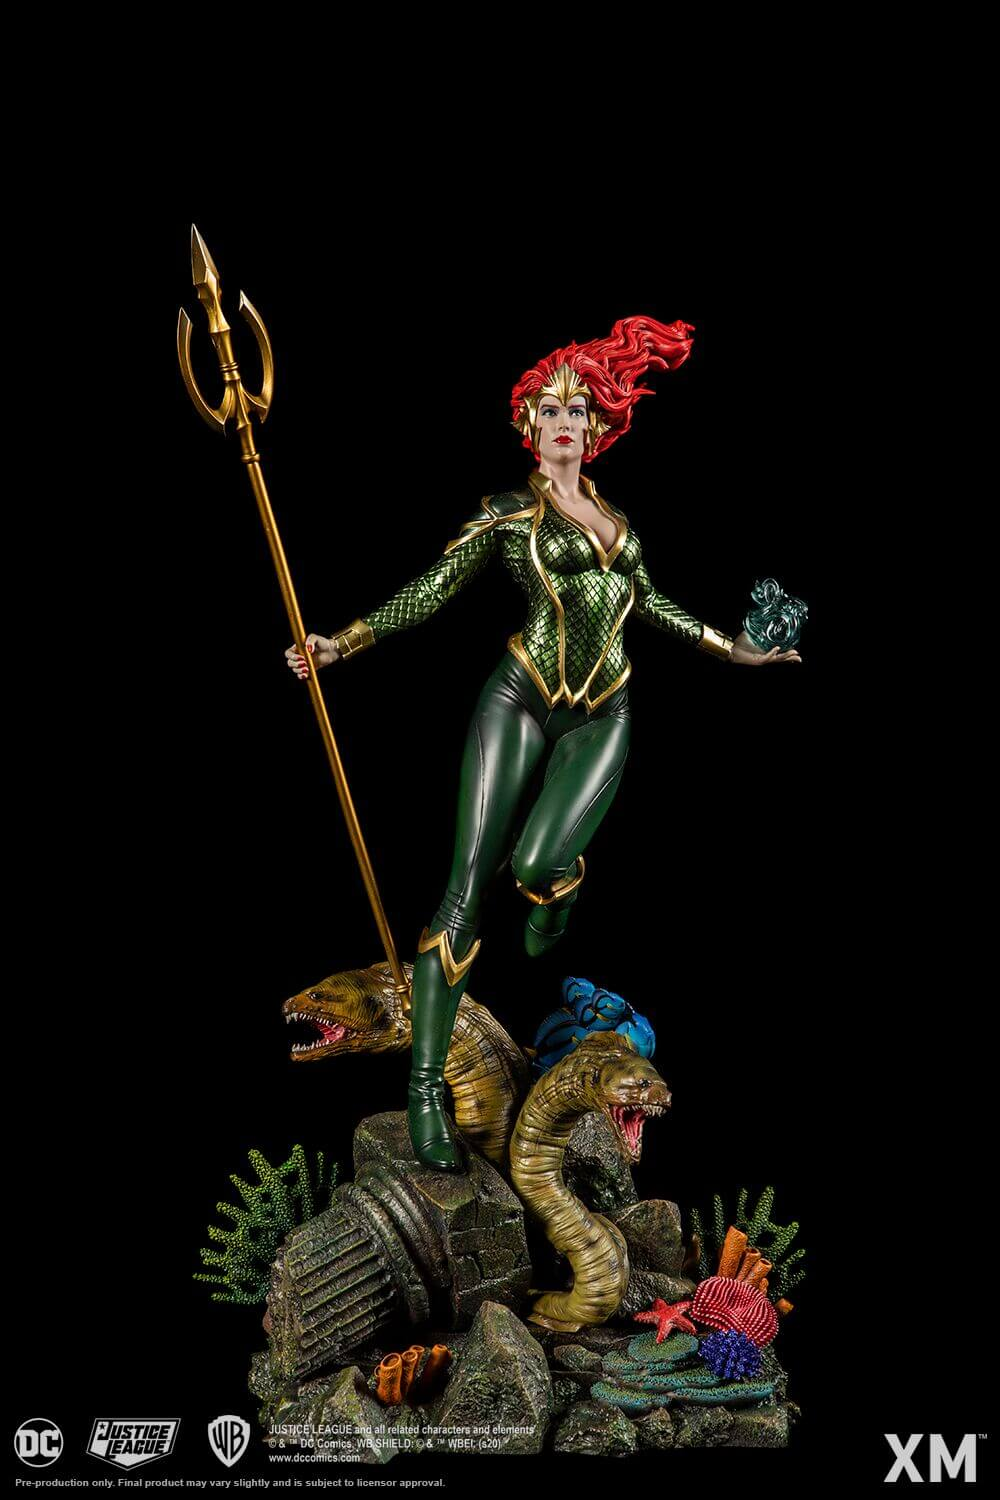 DC Comics Rebirth Mera 1:6th Scale Statue by XM Studios -XM Studios - India - www.superherotoystore.com